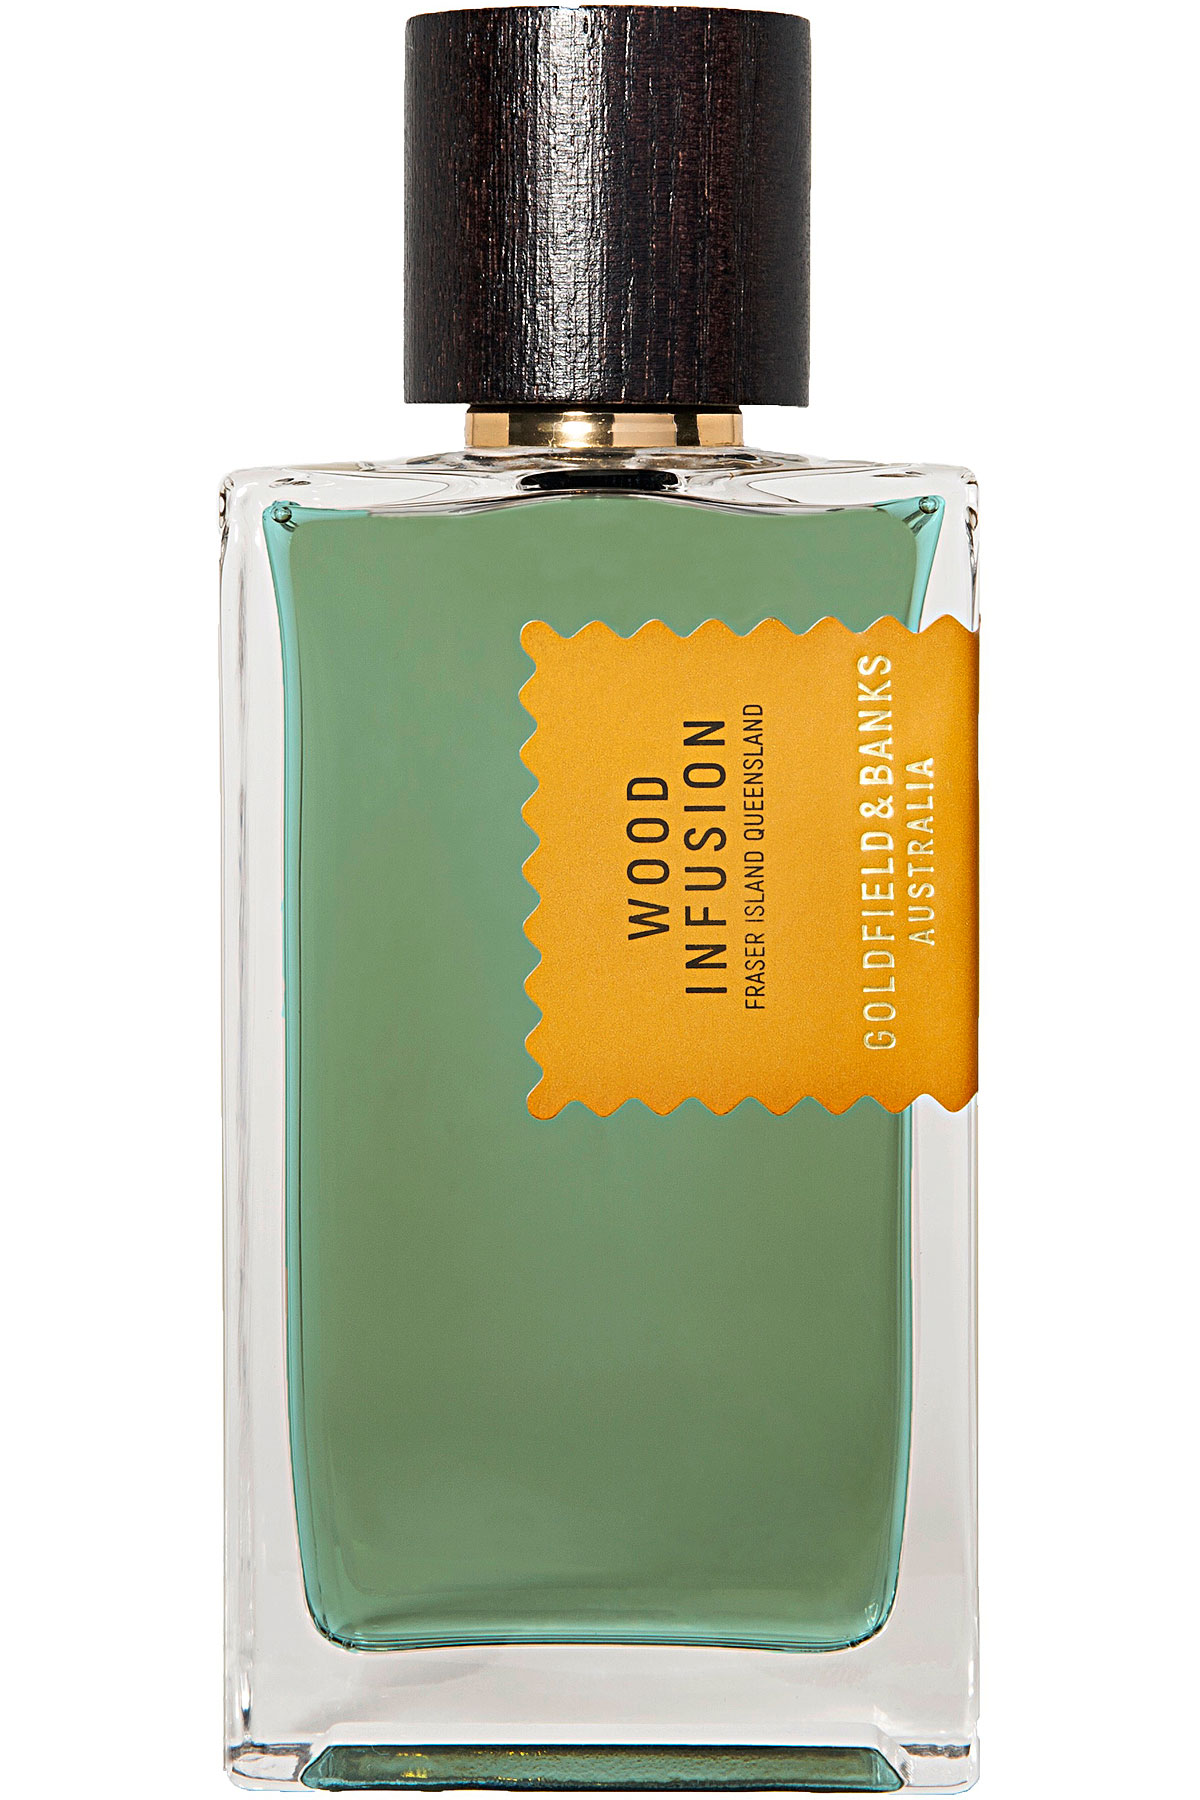 Goldfield & Banks Wood Infusion Unisex Cologne